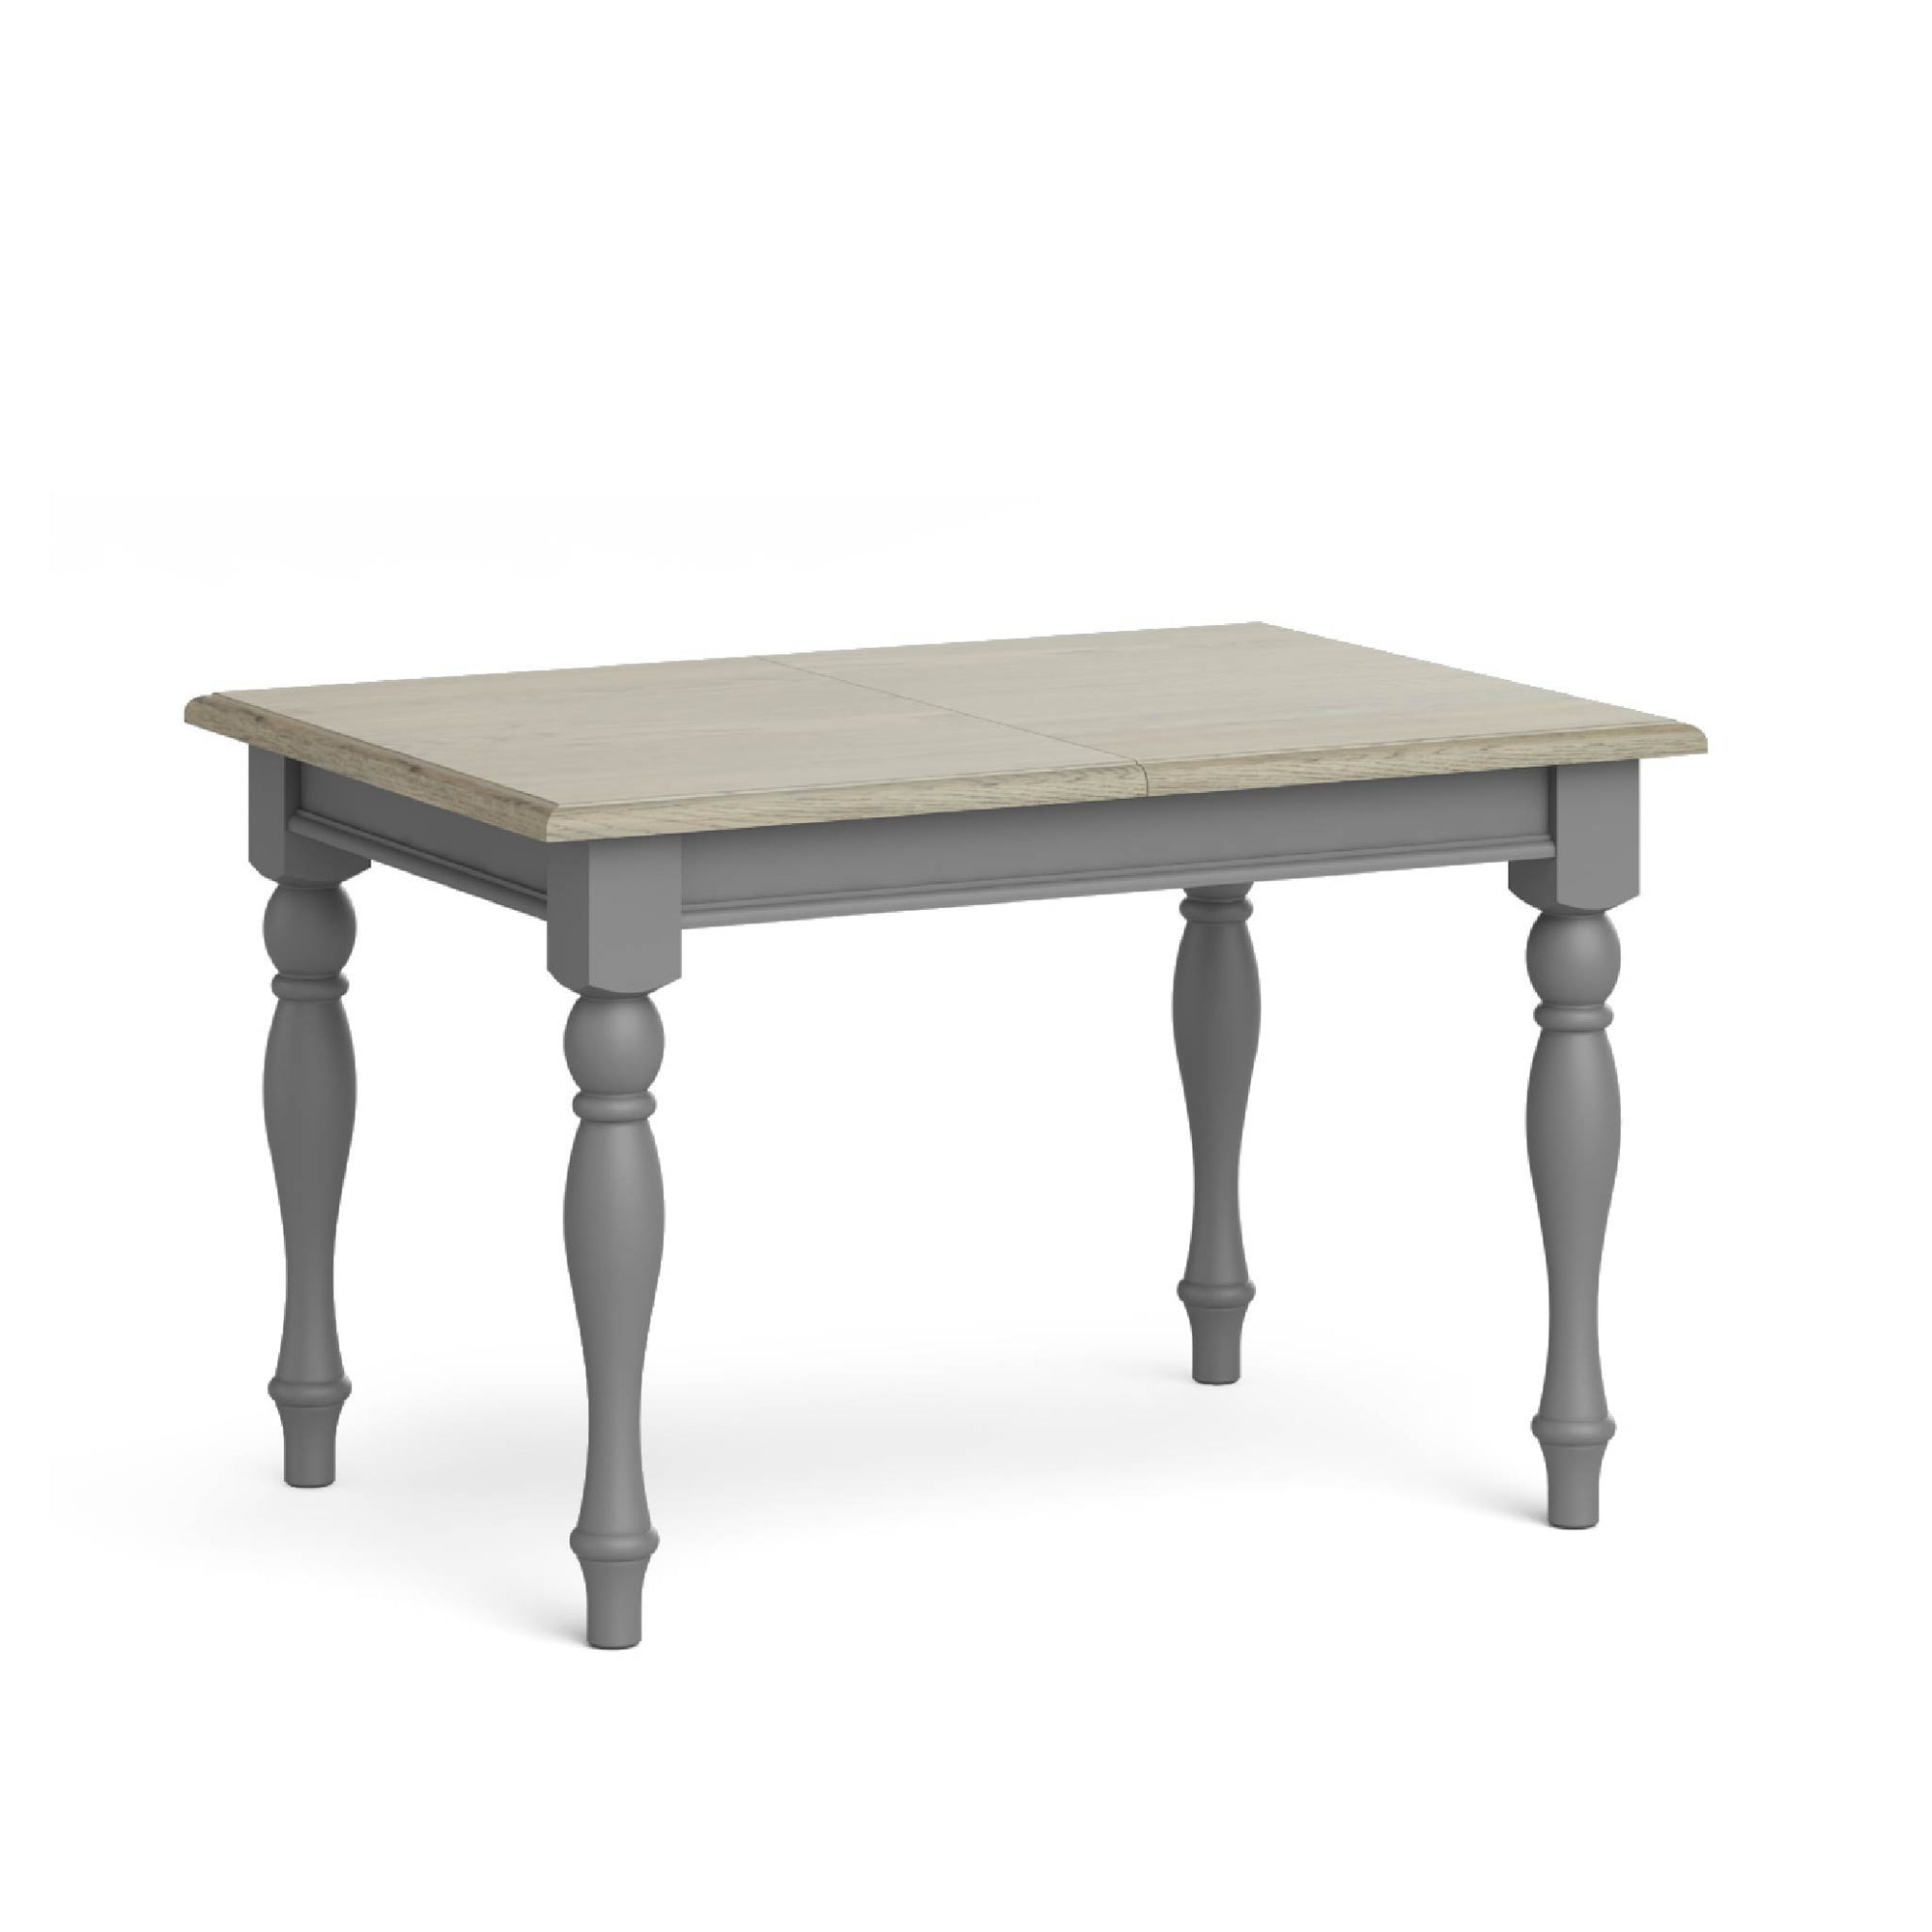 Mulsanne Grey Compact Extending Dining Table by Roseland Furniture